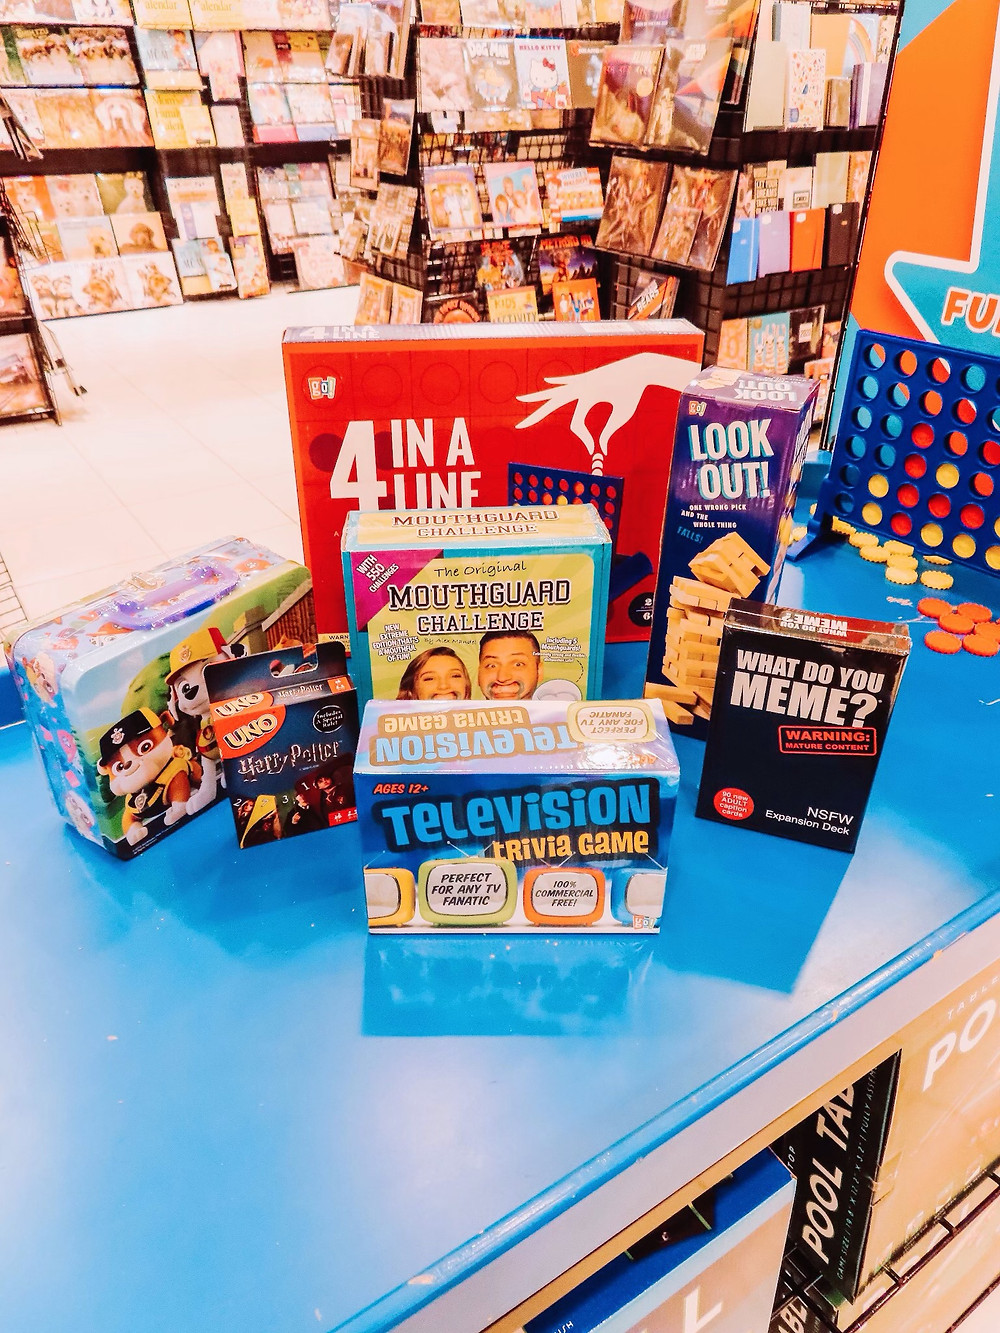 indy kids toys, indy games, indy calendars, holiday gifting, gift guide, indy blogger, Hamilton town center